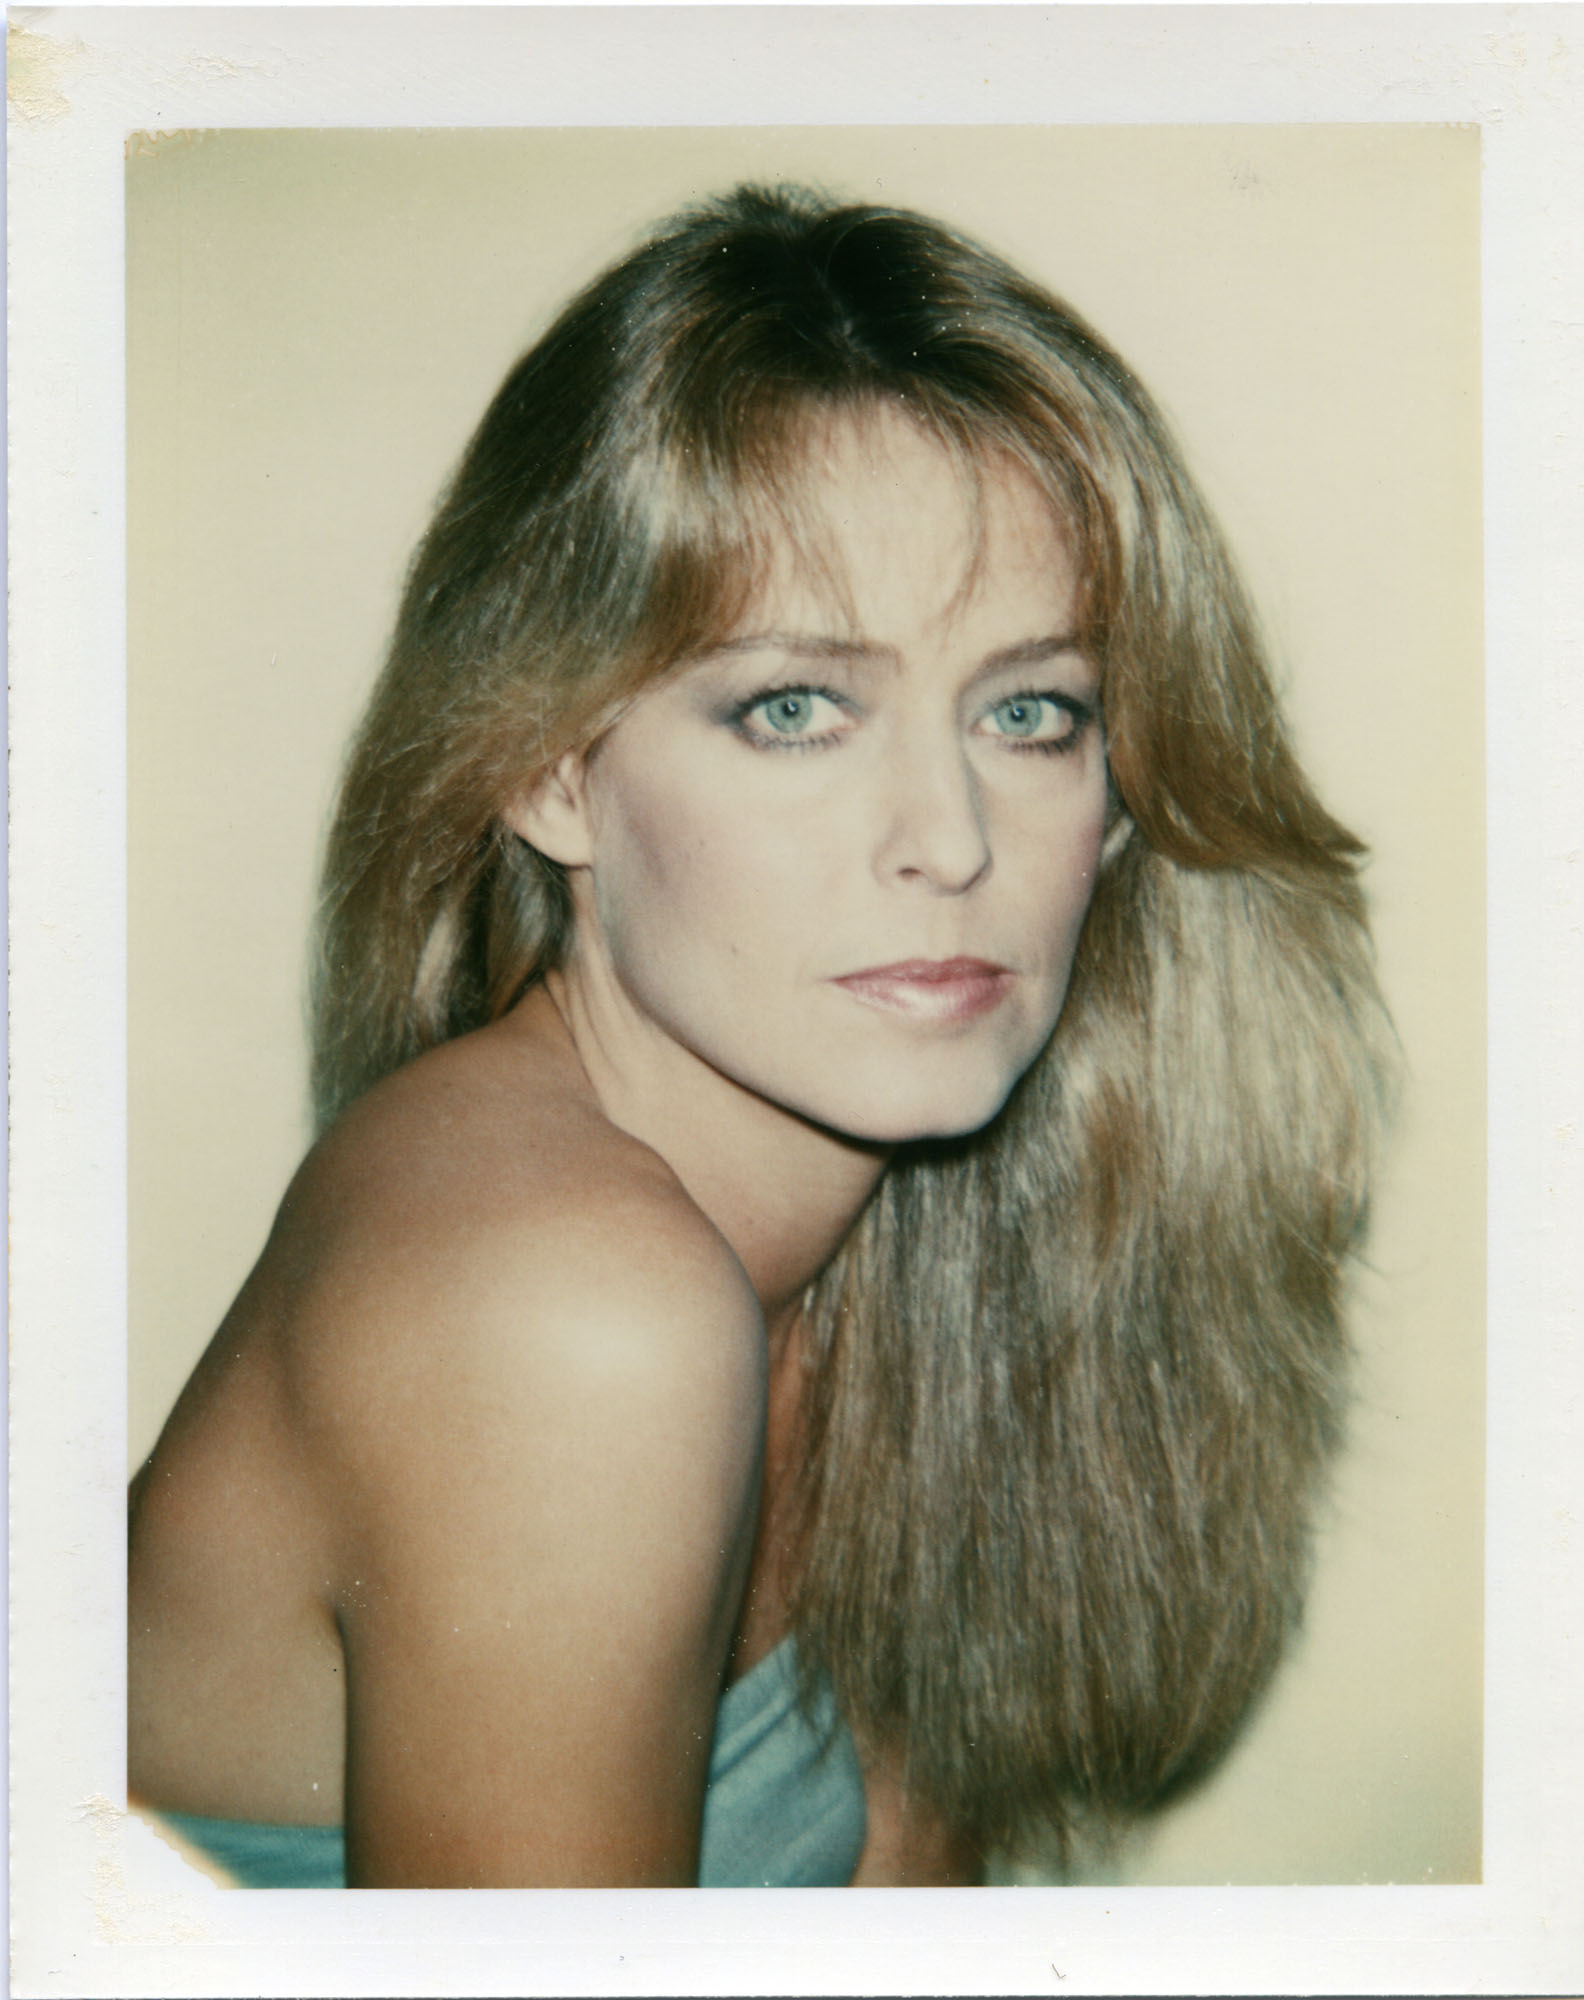 Andy Warhol, Untitled (Farrah Fawcett), 1979. Polaroid color print. Collection of DePaul Art Museum, Gift of the Andy Warhol Foundation for the Visual Arts, 2008.74.16